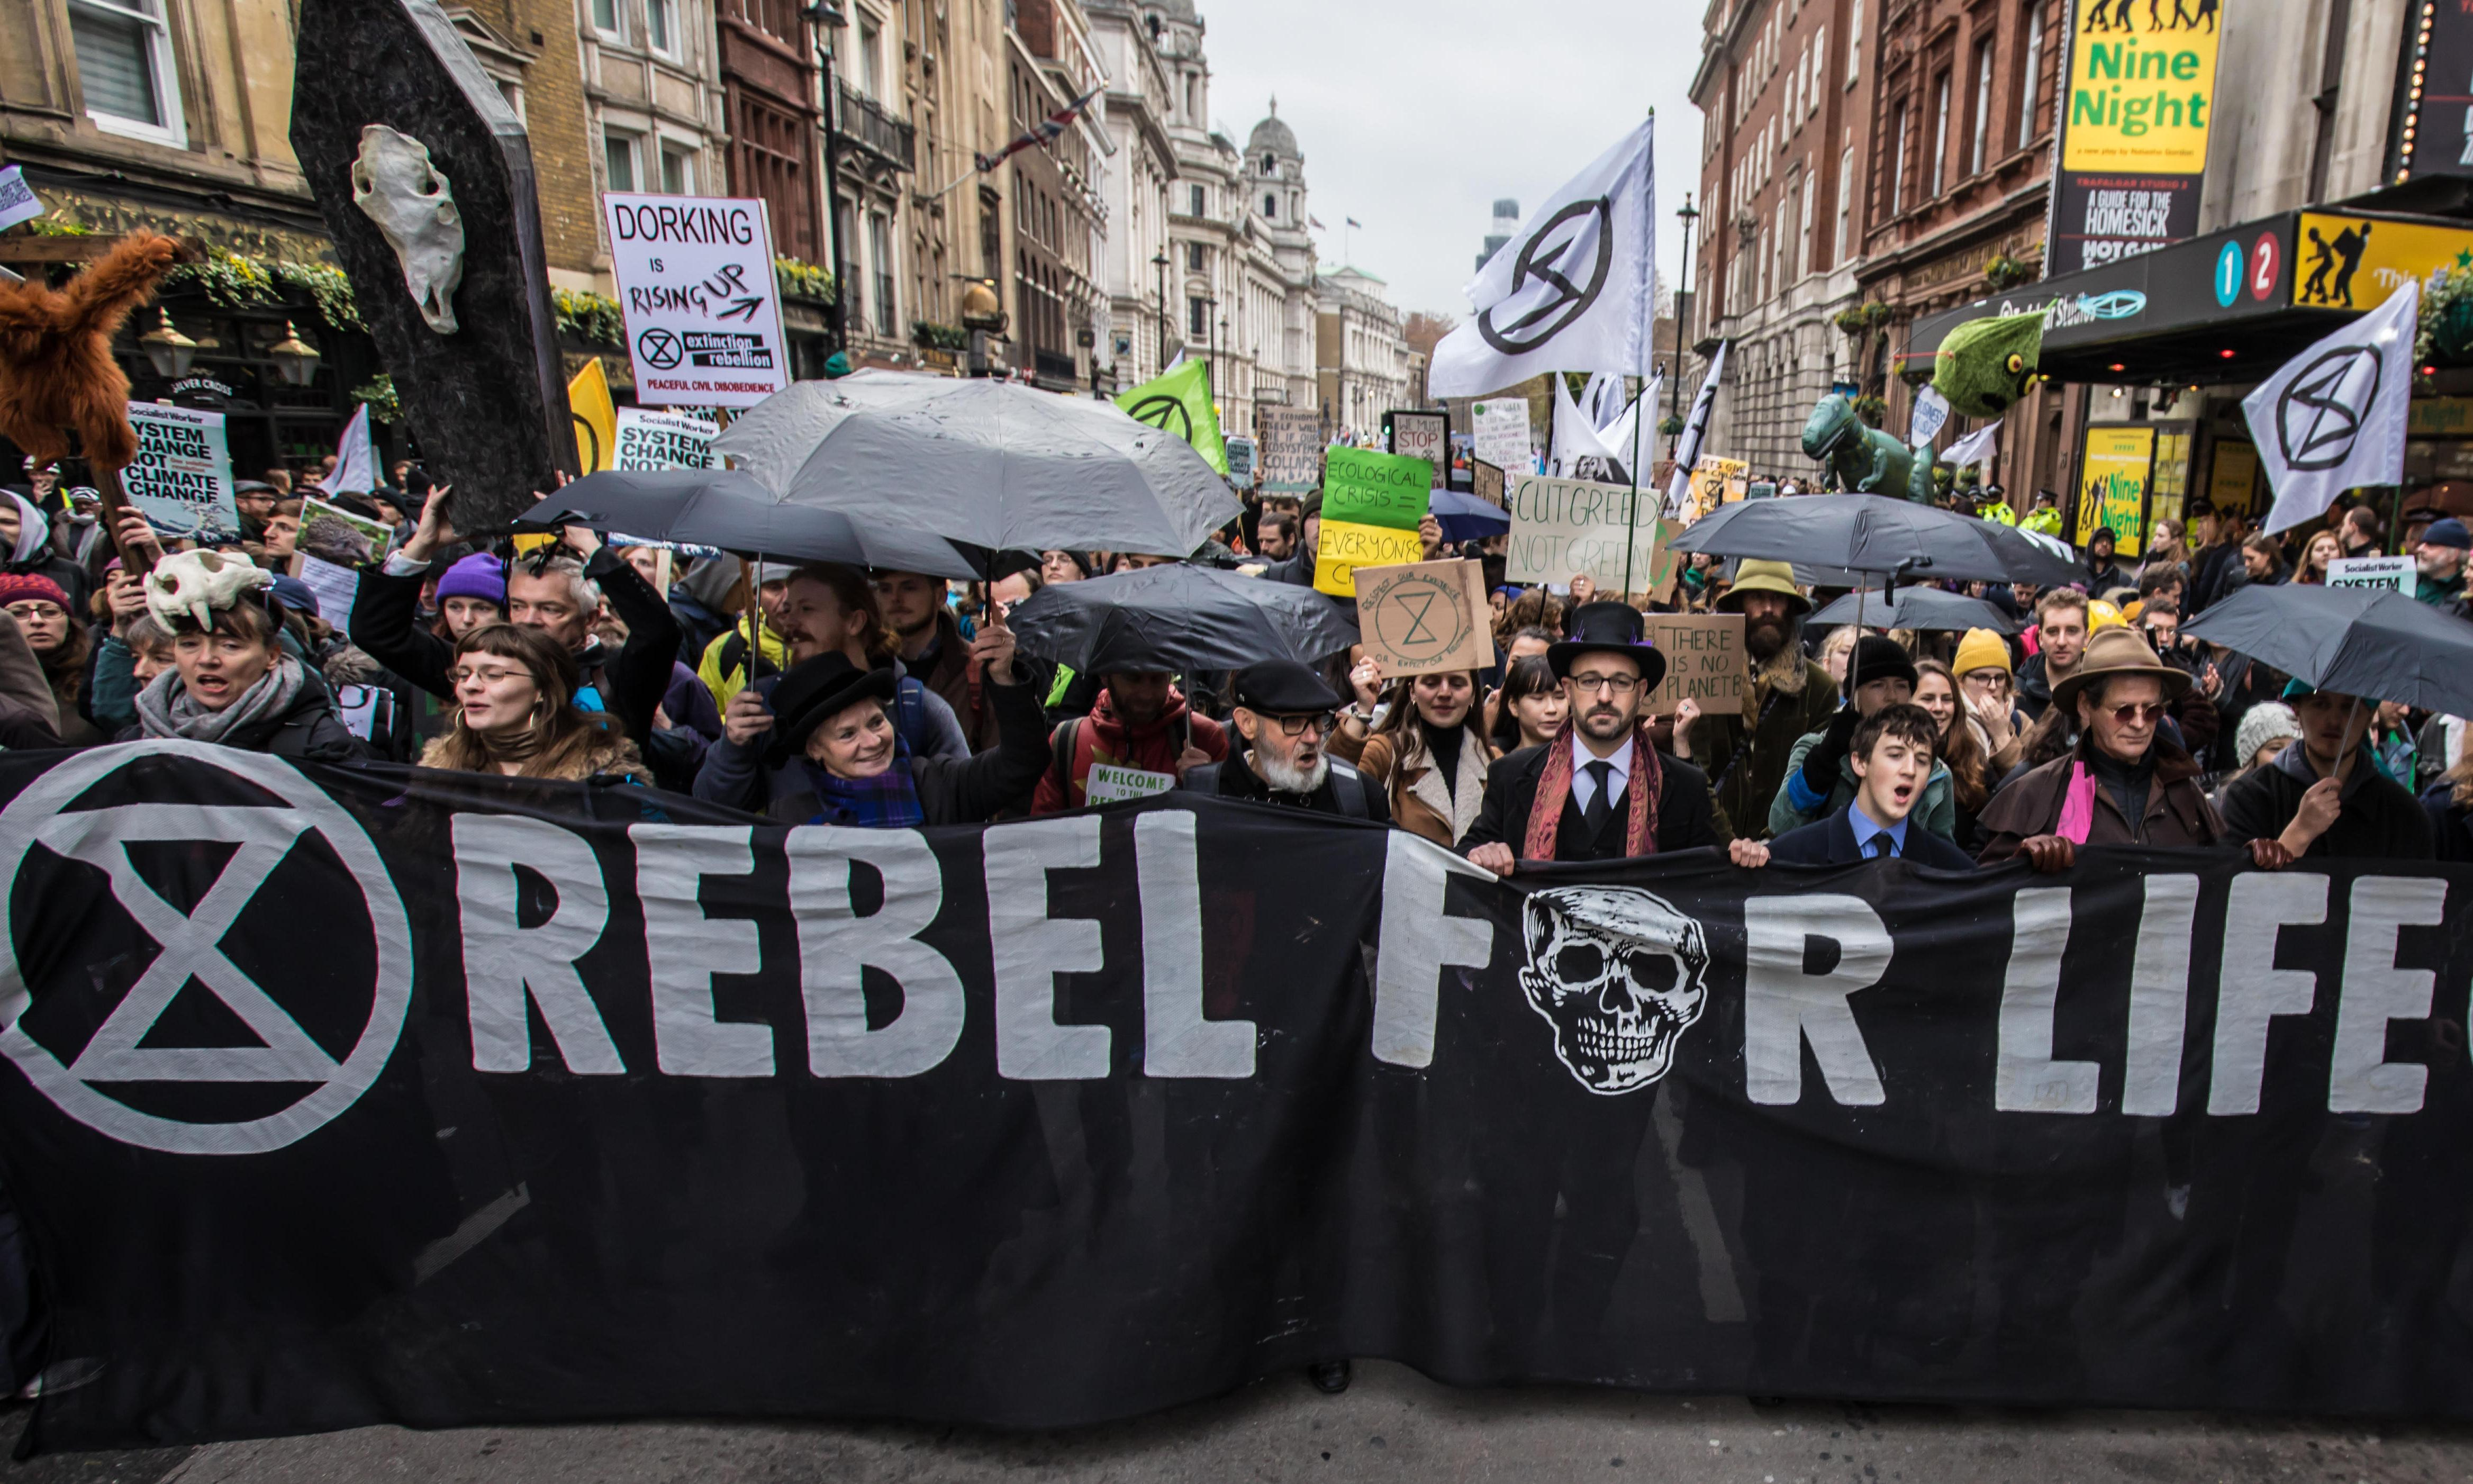 Extinction Rebellion's tactics are working. It has pierced the bubble of denial